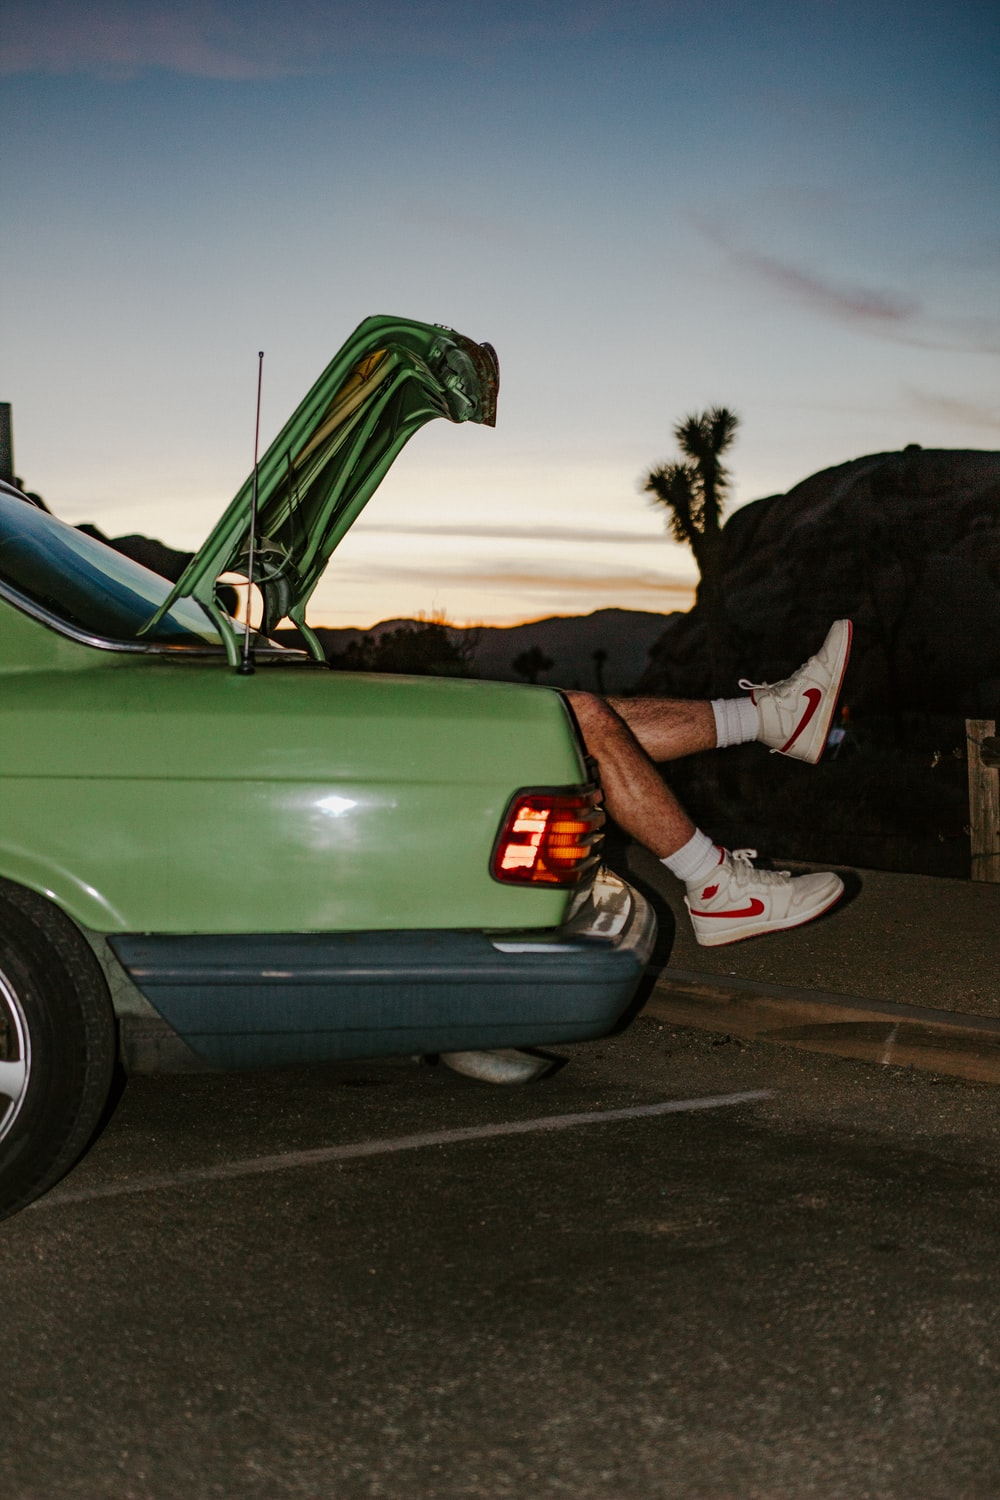 person in black and white nike sneakers sitting on green car hood during daytime